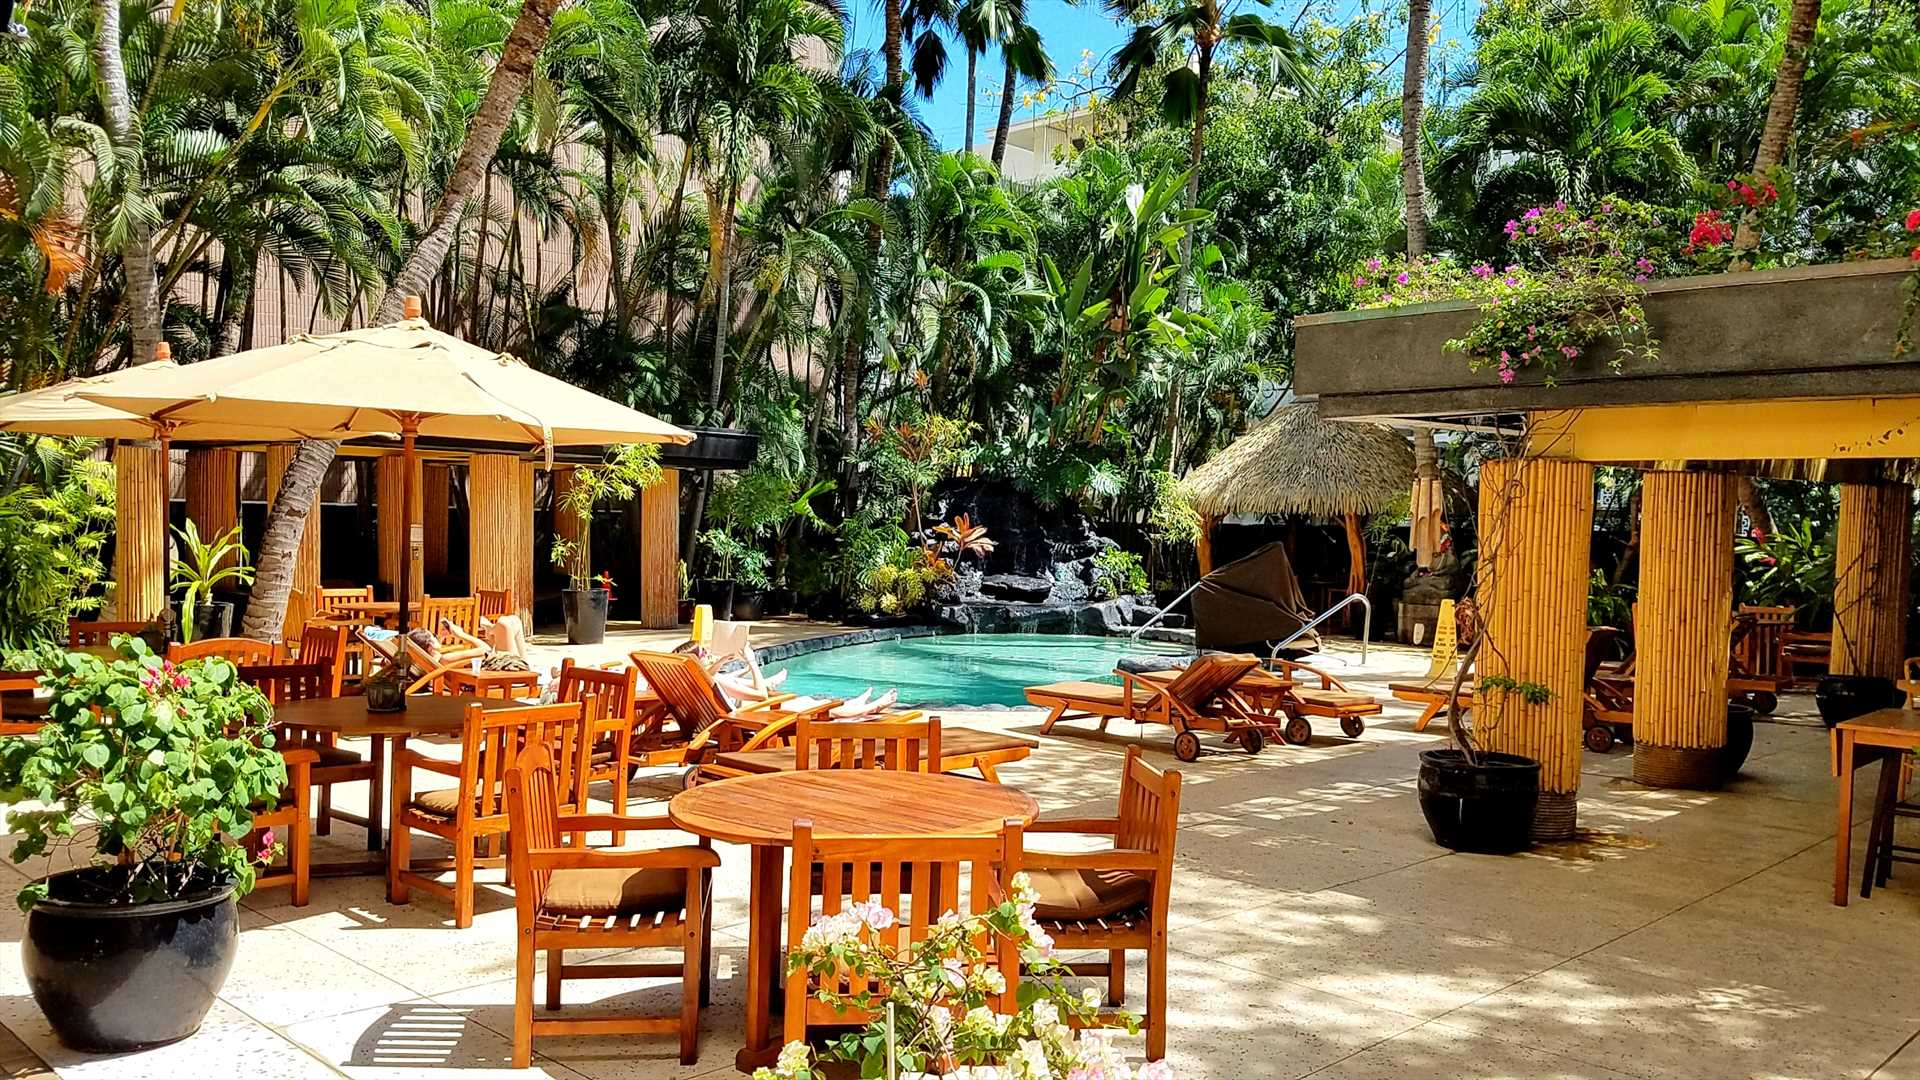 The pool area provides a friendly atmosphere for socializing and relaxing.